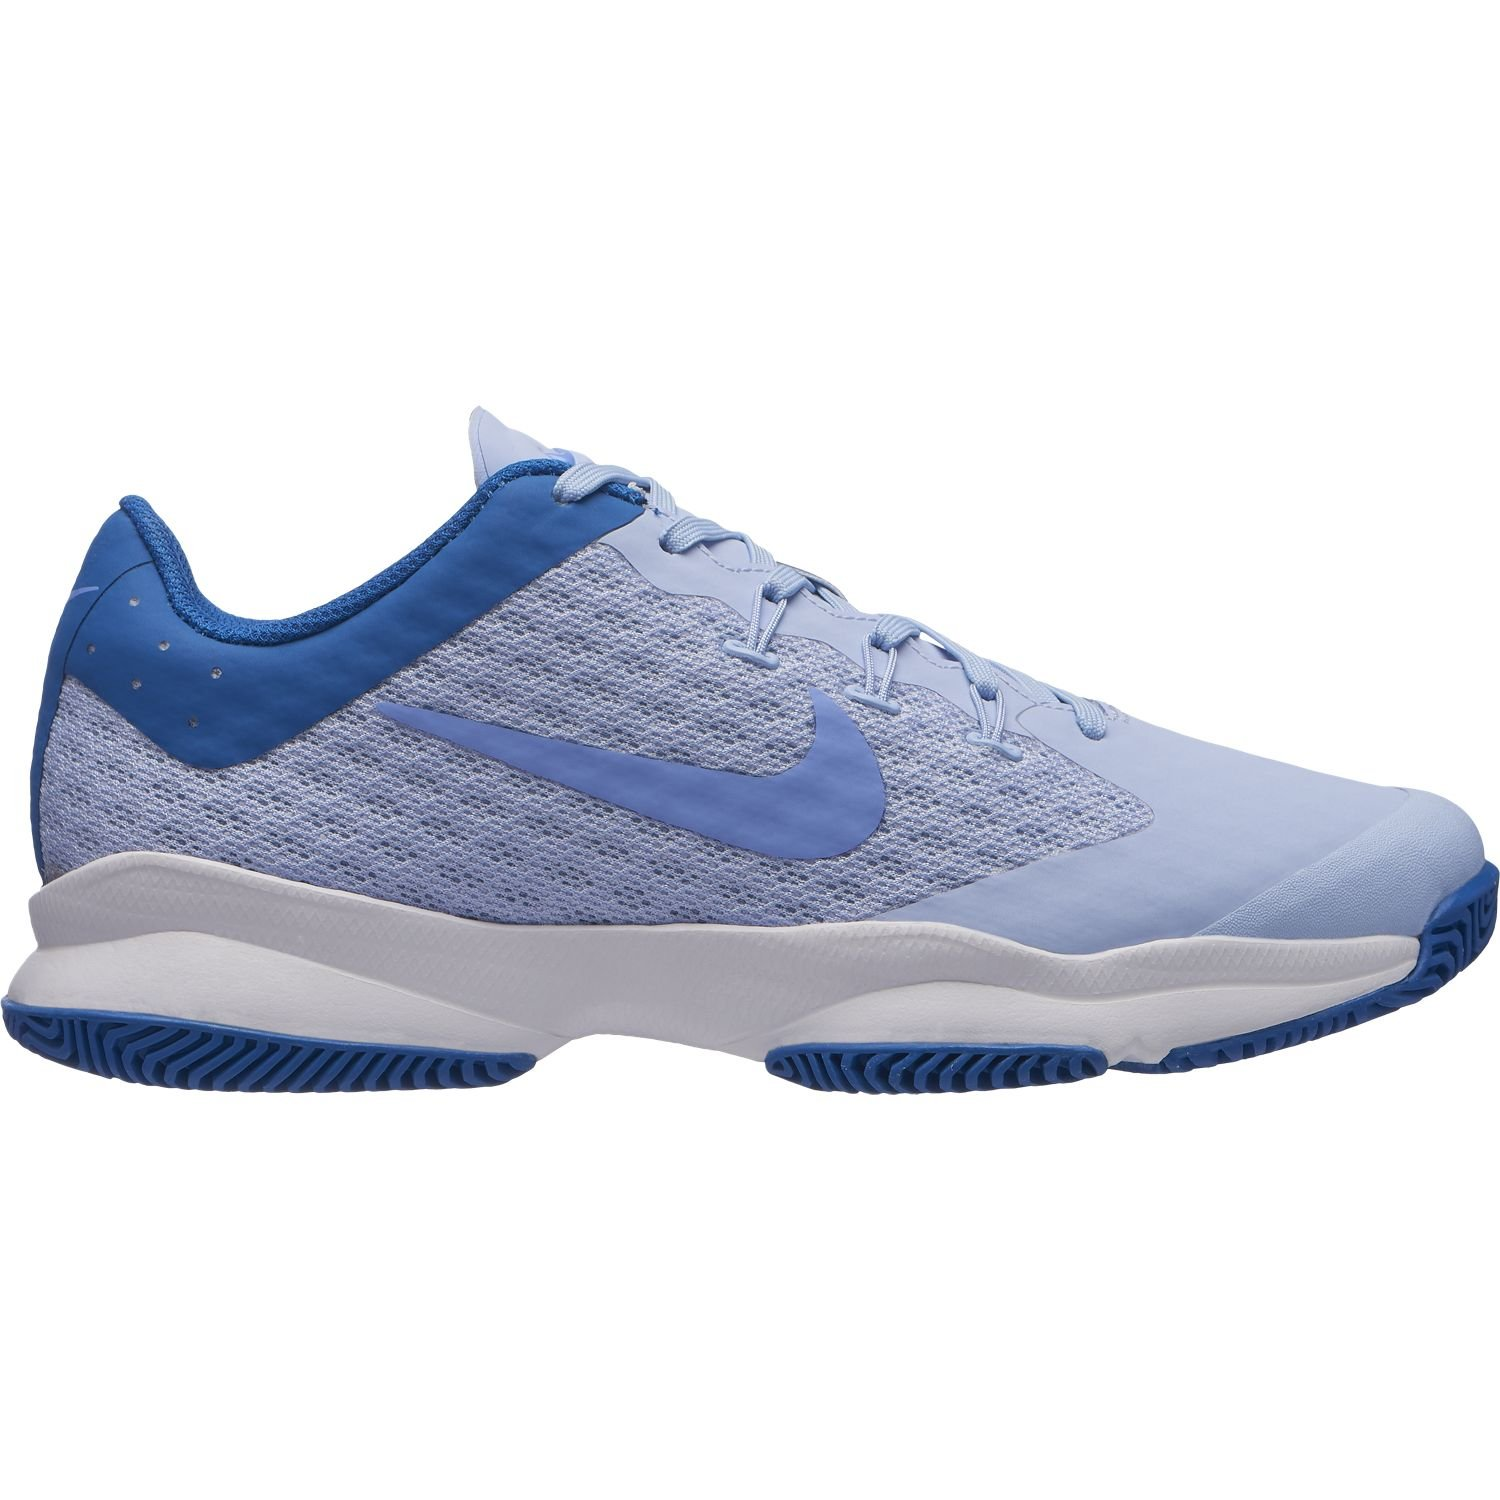 NIKE Women's Air Zoom Ultra Tennis Shoes B078BGCRQH 8.5 M US|Royal Tint/Monarch Purple/White